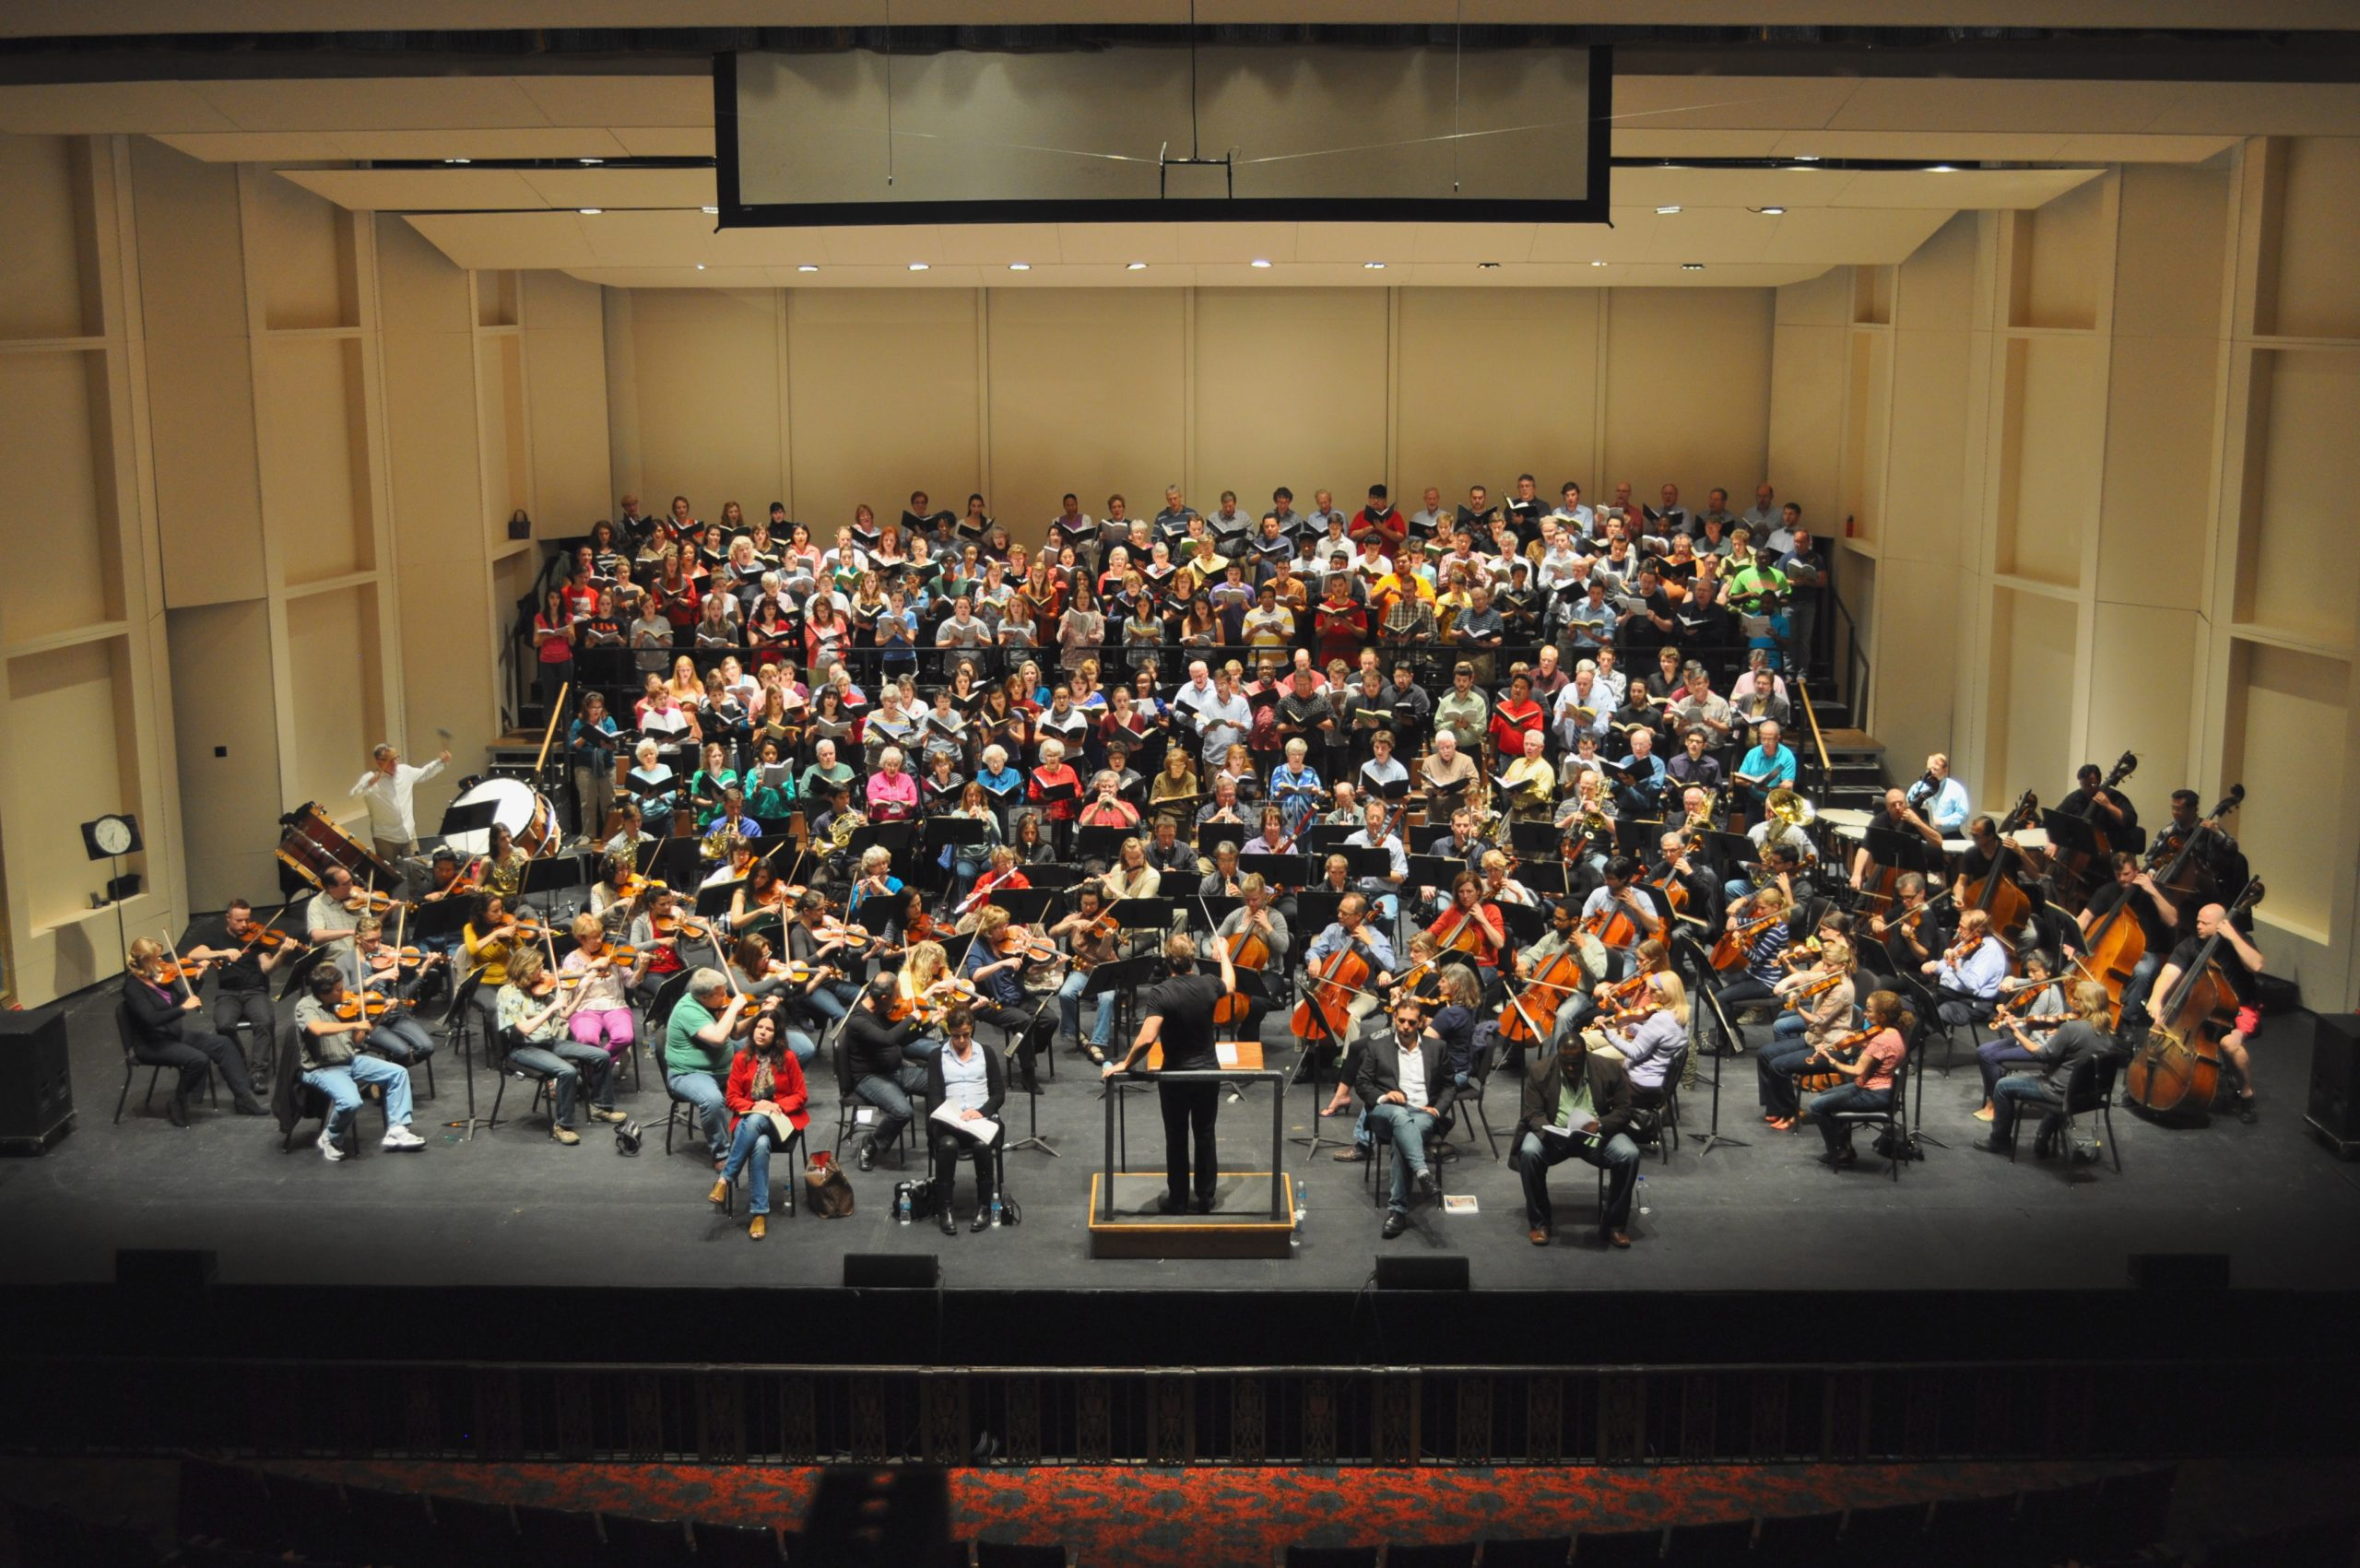 Rehearsal night at The Majestic Theatre with the San Antonio Symphony, four operatic soloists and 210 Singers made up of the San Antonio Mastersingers, UTSA Concert Choir and the Trinity University Choir. Photo by Iris Dimmick.